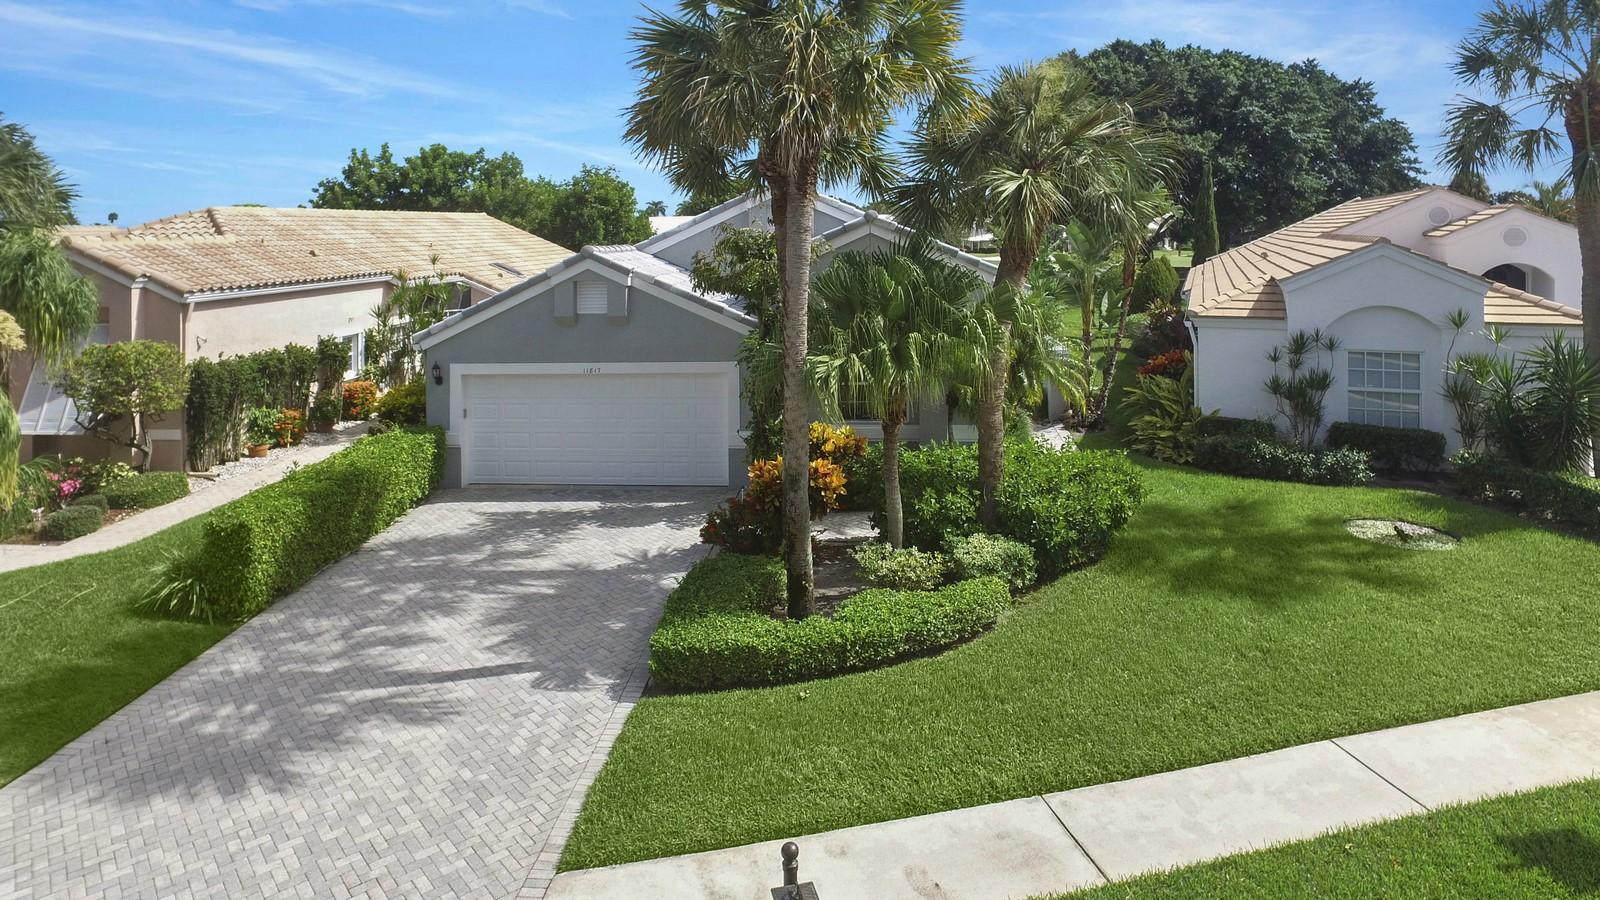 Photo of 11817 Fountainside Circle, Boynton Beach, FL 33437